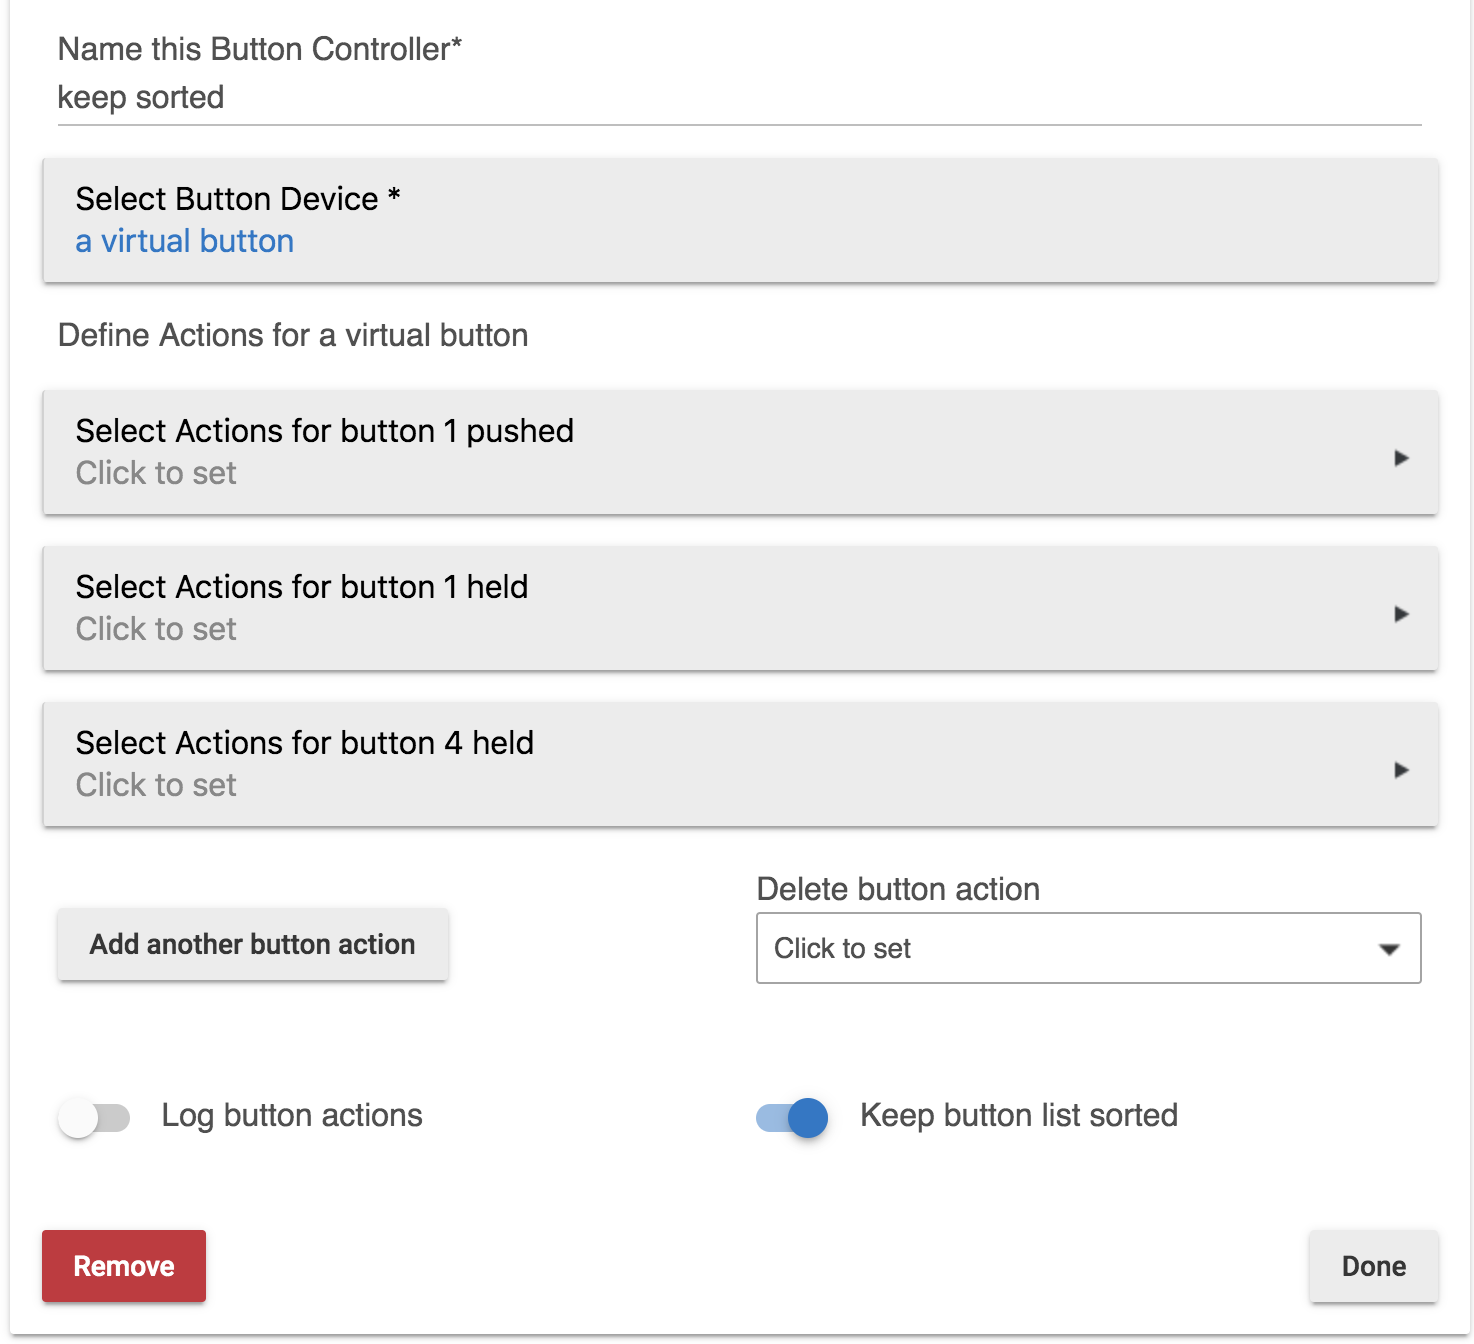 Released] Button Controller 3 0 - Automations - Hubitat